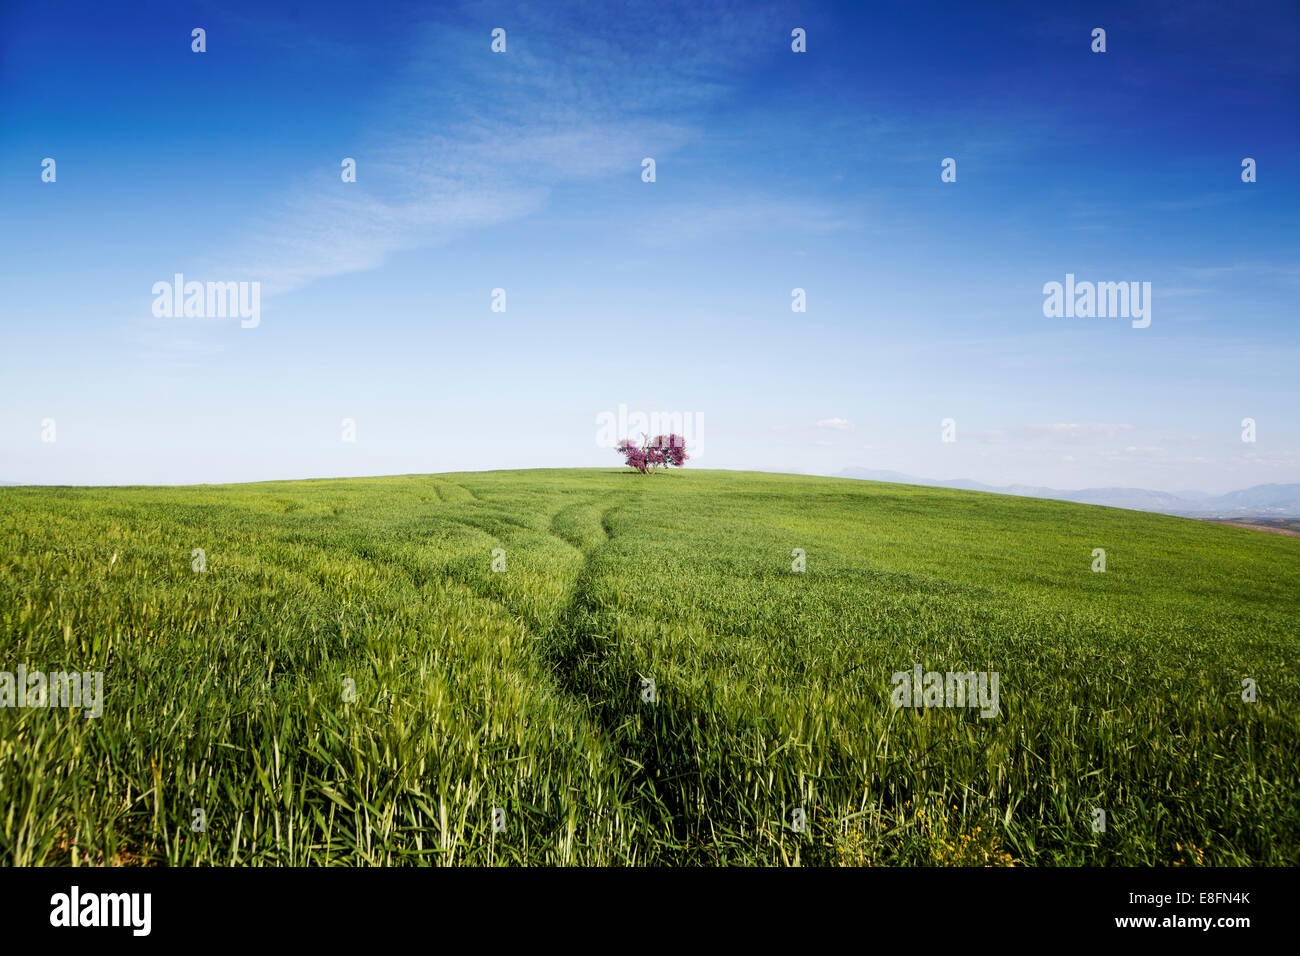 Spain, Pink tree in middle of green field - Stock Image